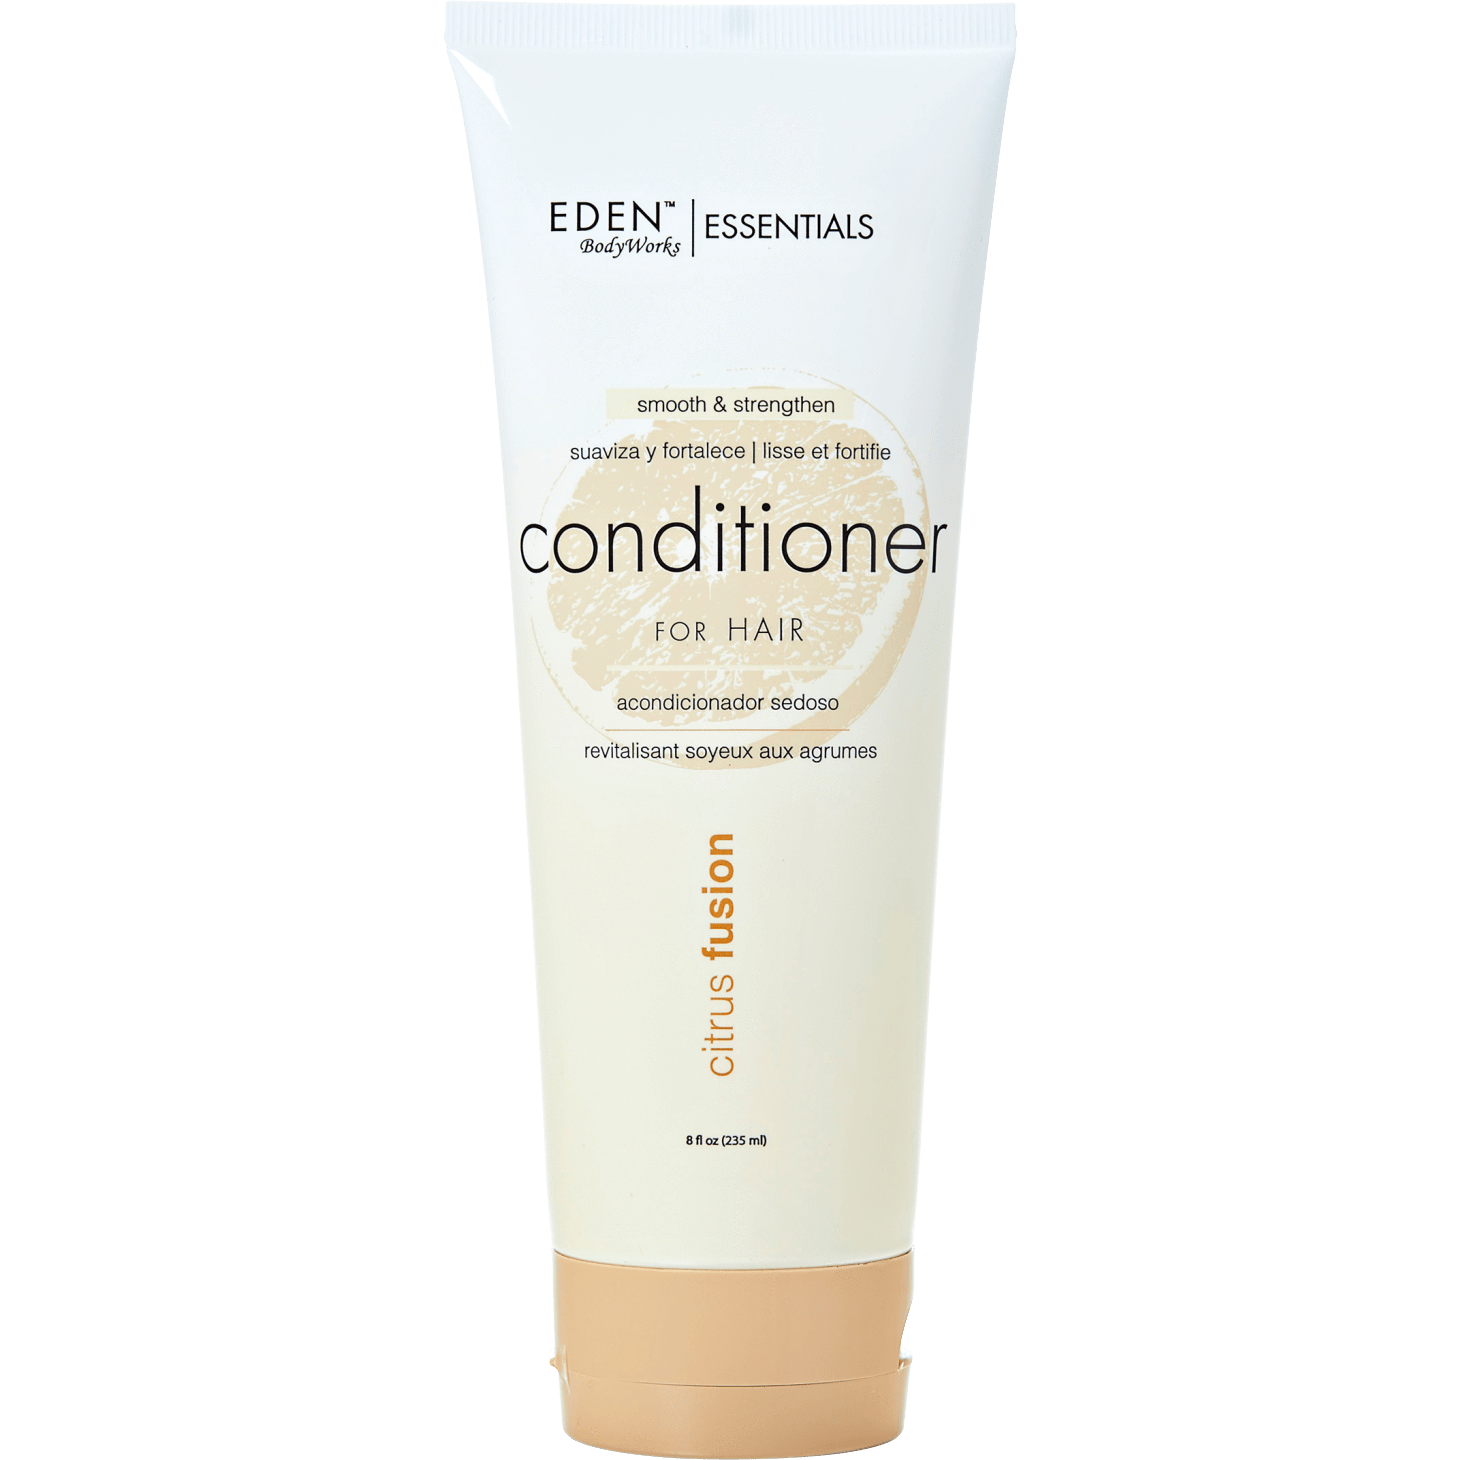 Eden Bodyworks Conditioner Eden Bodyworks Essentials - Citrus Fusion - Conditioner (8 oz.)